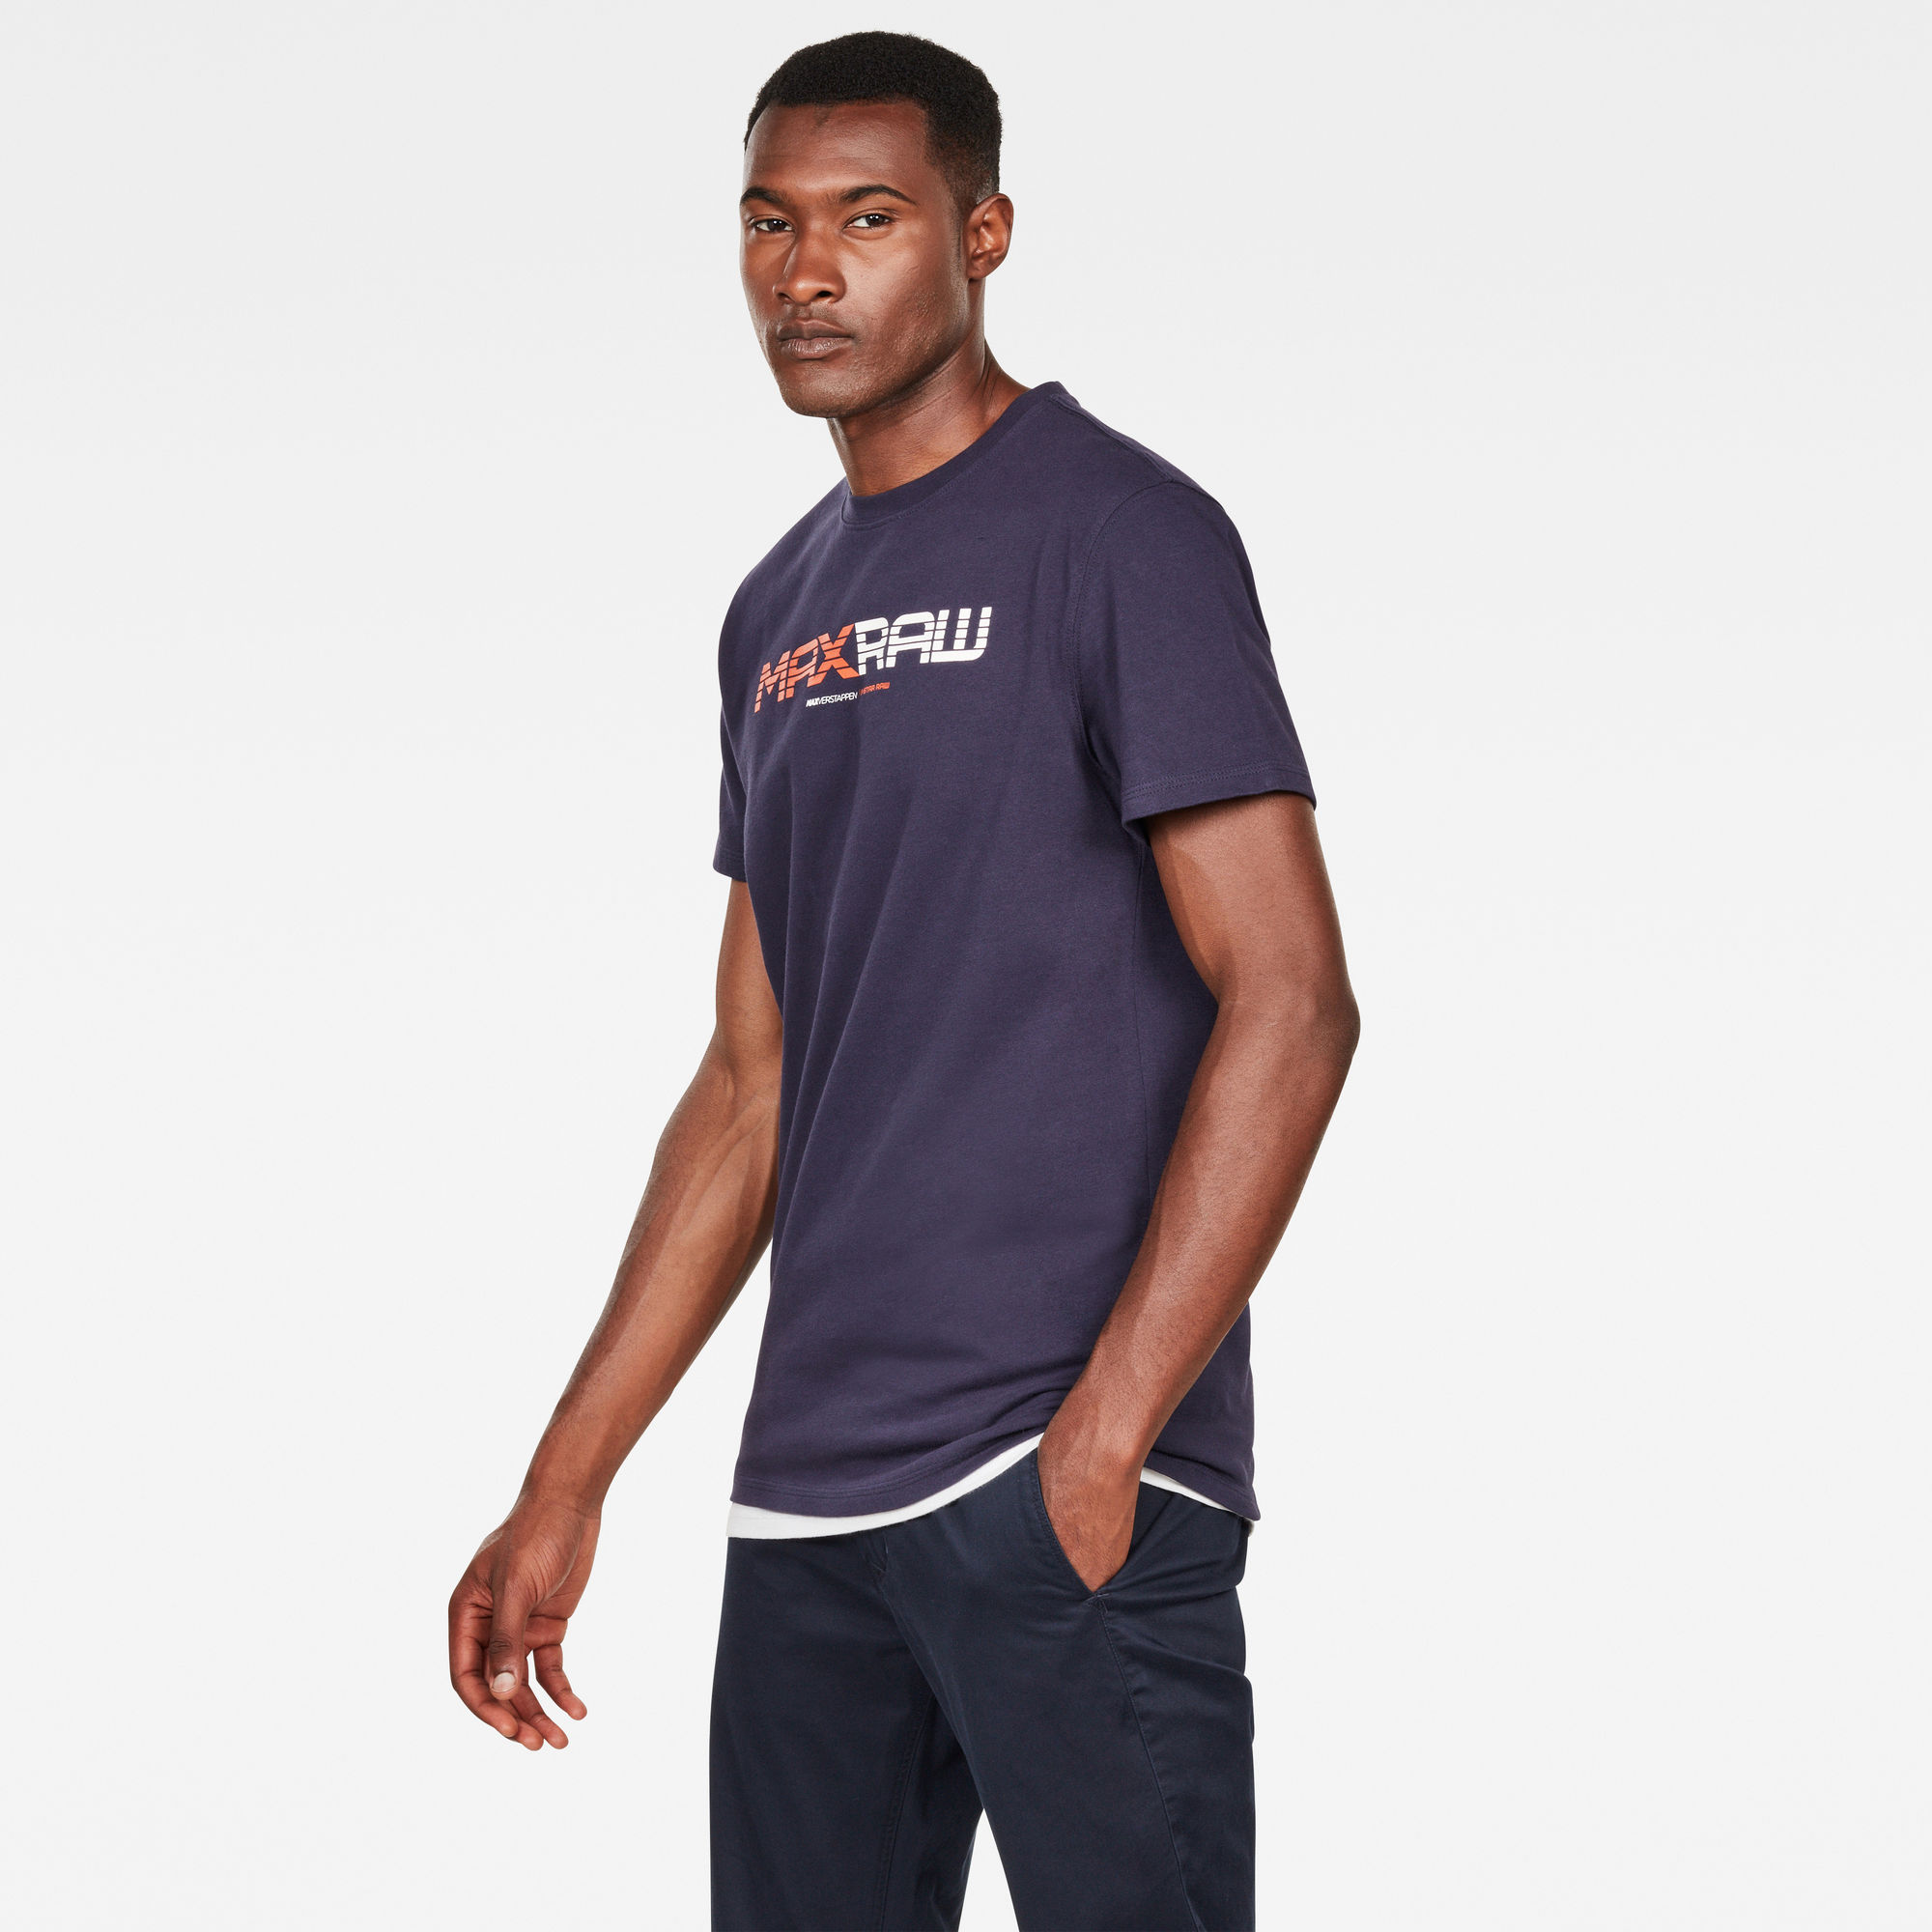 G-Star RAW MAXRAW III Graphic T-Shirt